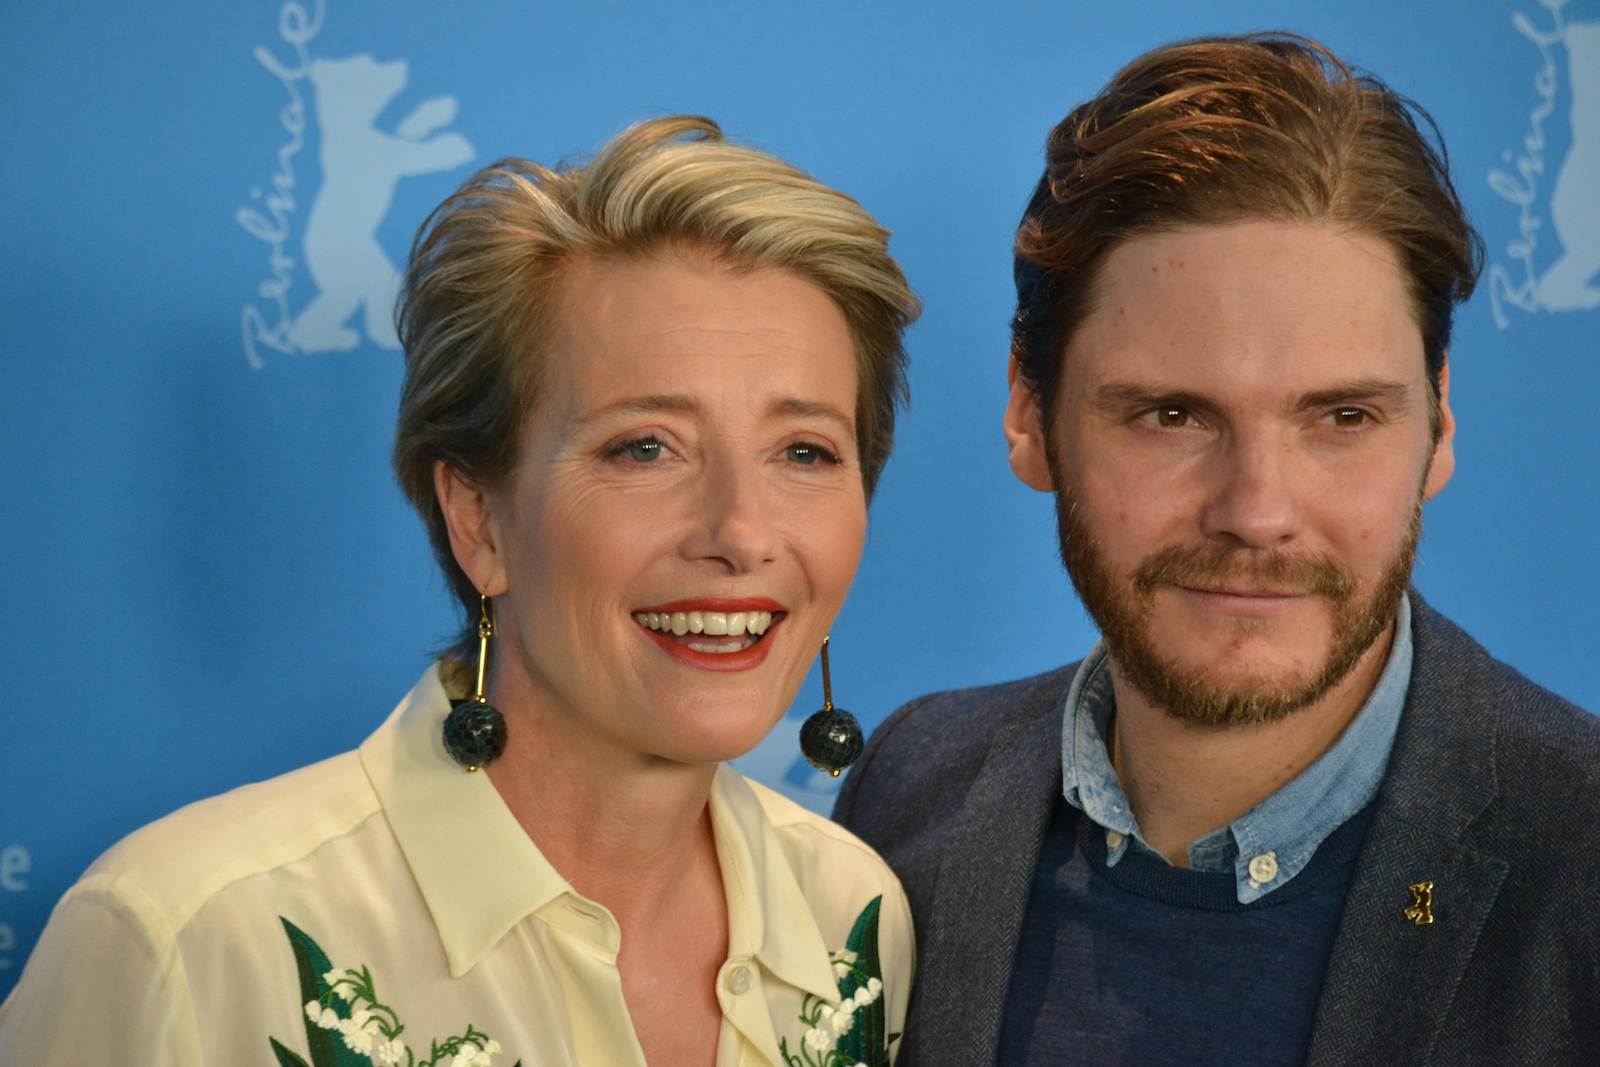 Berlino 2016: Emma Thompson e Daniel Brühl in uno scatto al photocall di Alone in Berlin